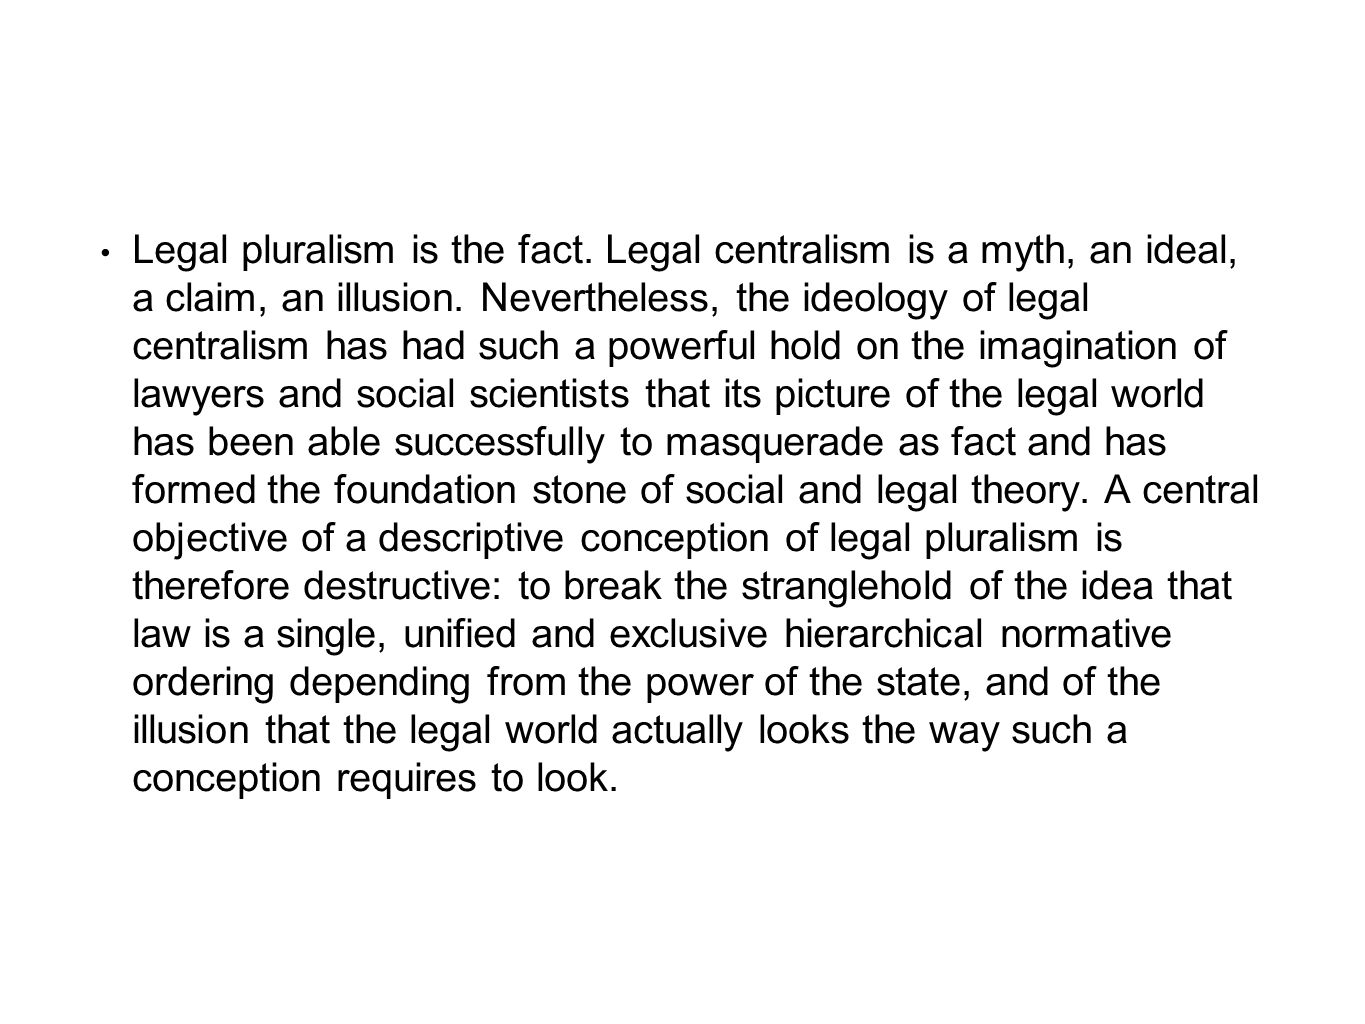 Legal pluralism is the fact. Legal centralism is a myth, an ideal, a claim, an illusion. Nevertheless, the ideology of legal centralism has had such a